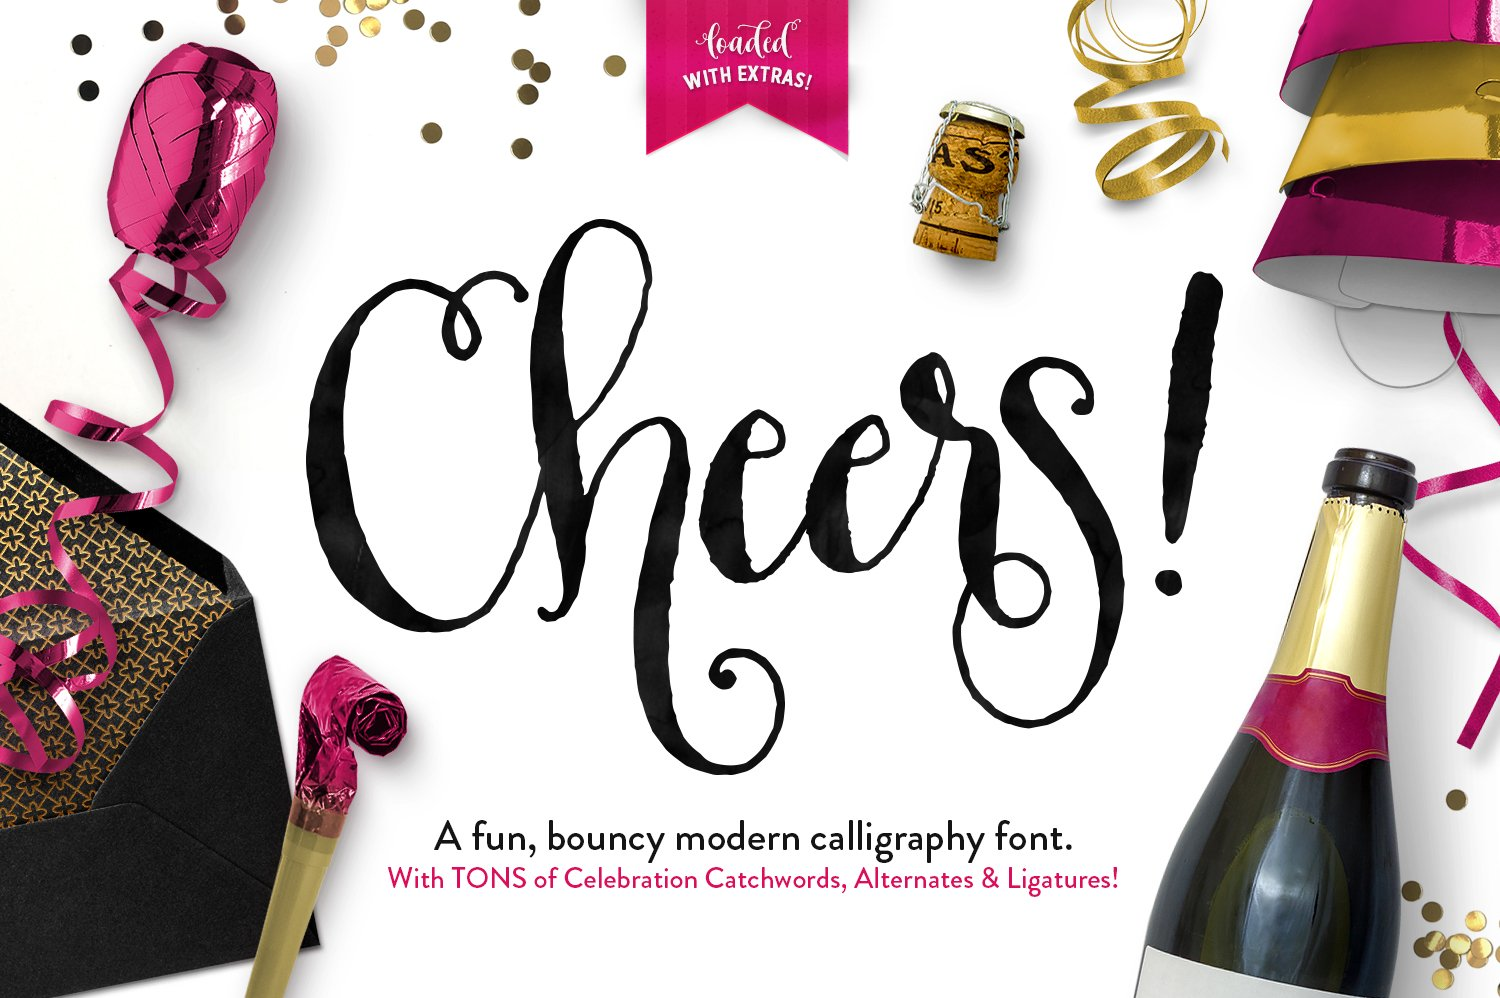 """Download Callie's Font """"Cheers"""" here"""" http://crtv.mk/d0Ygl"""